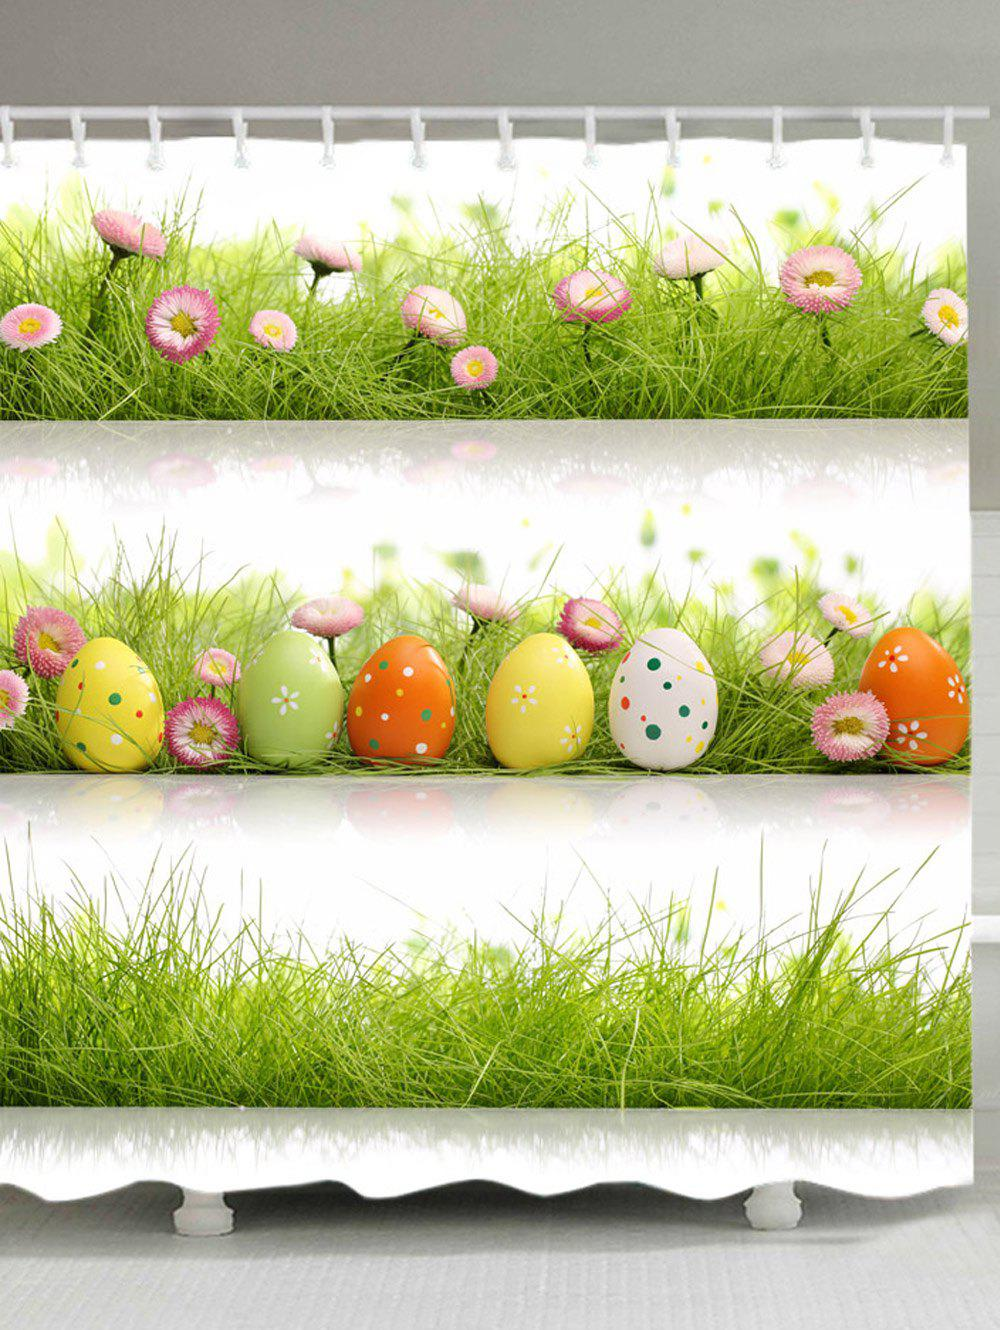 Outfits Eggs Grass Pattern Waterproof Bathroom Shower Curtain